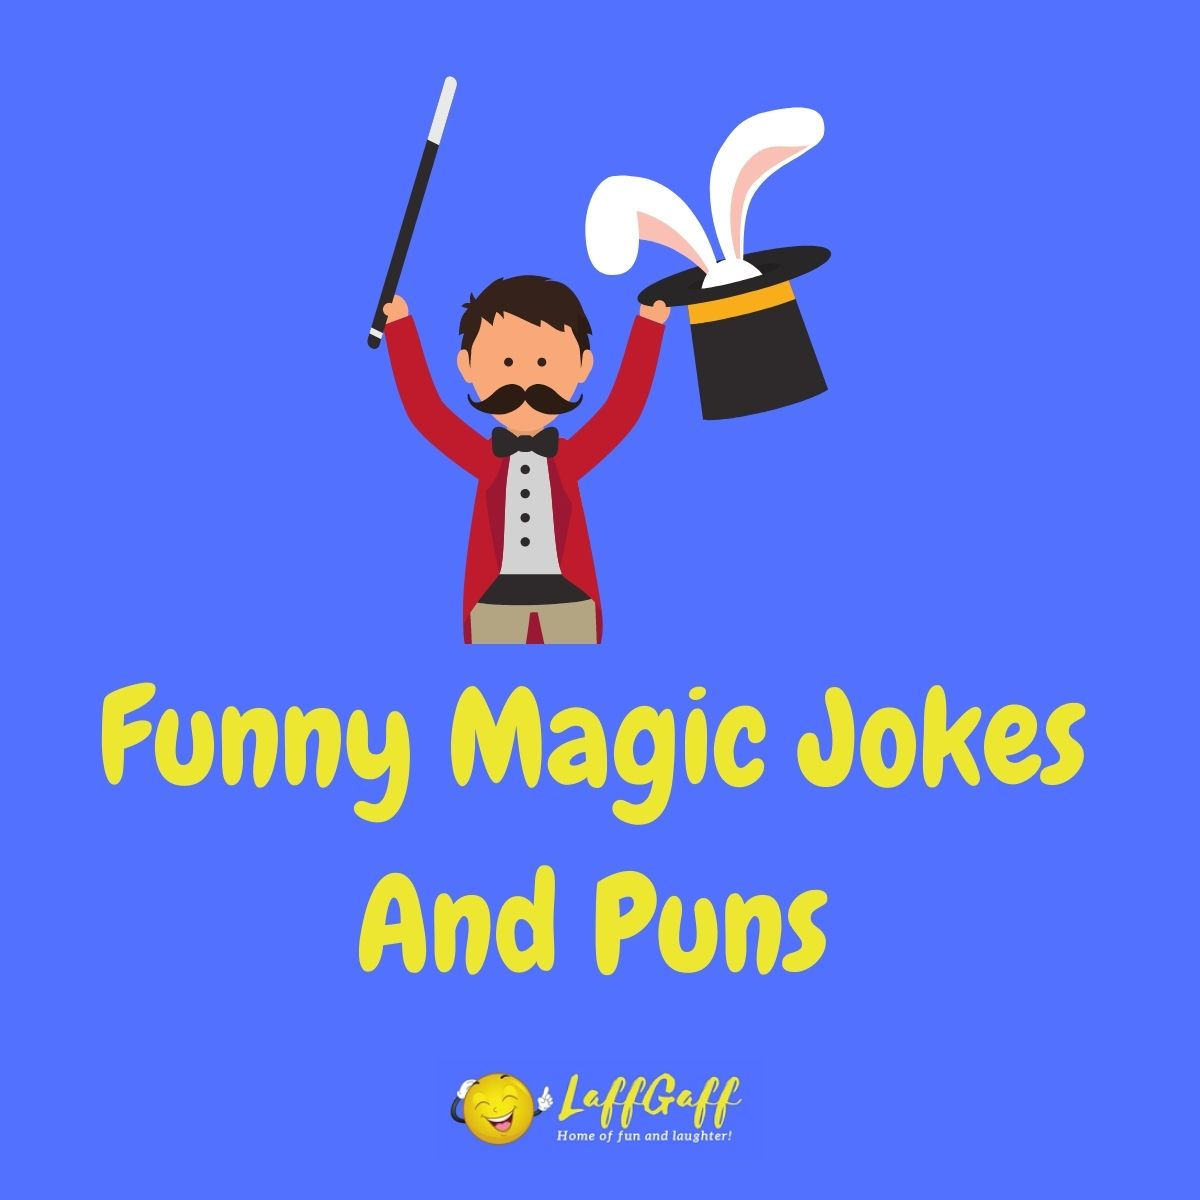 Featured image for a page of funny magic jokes and puns.